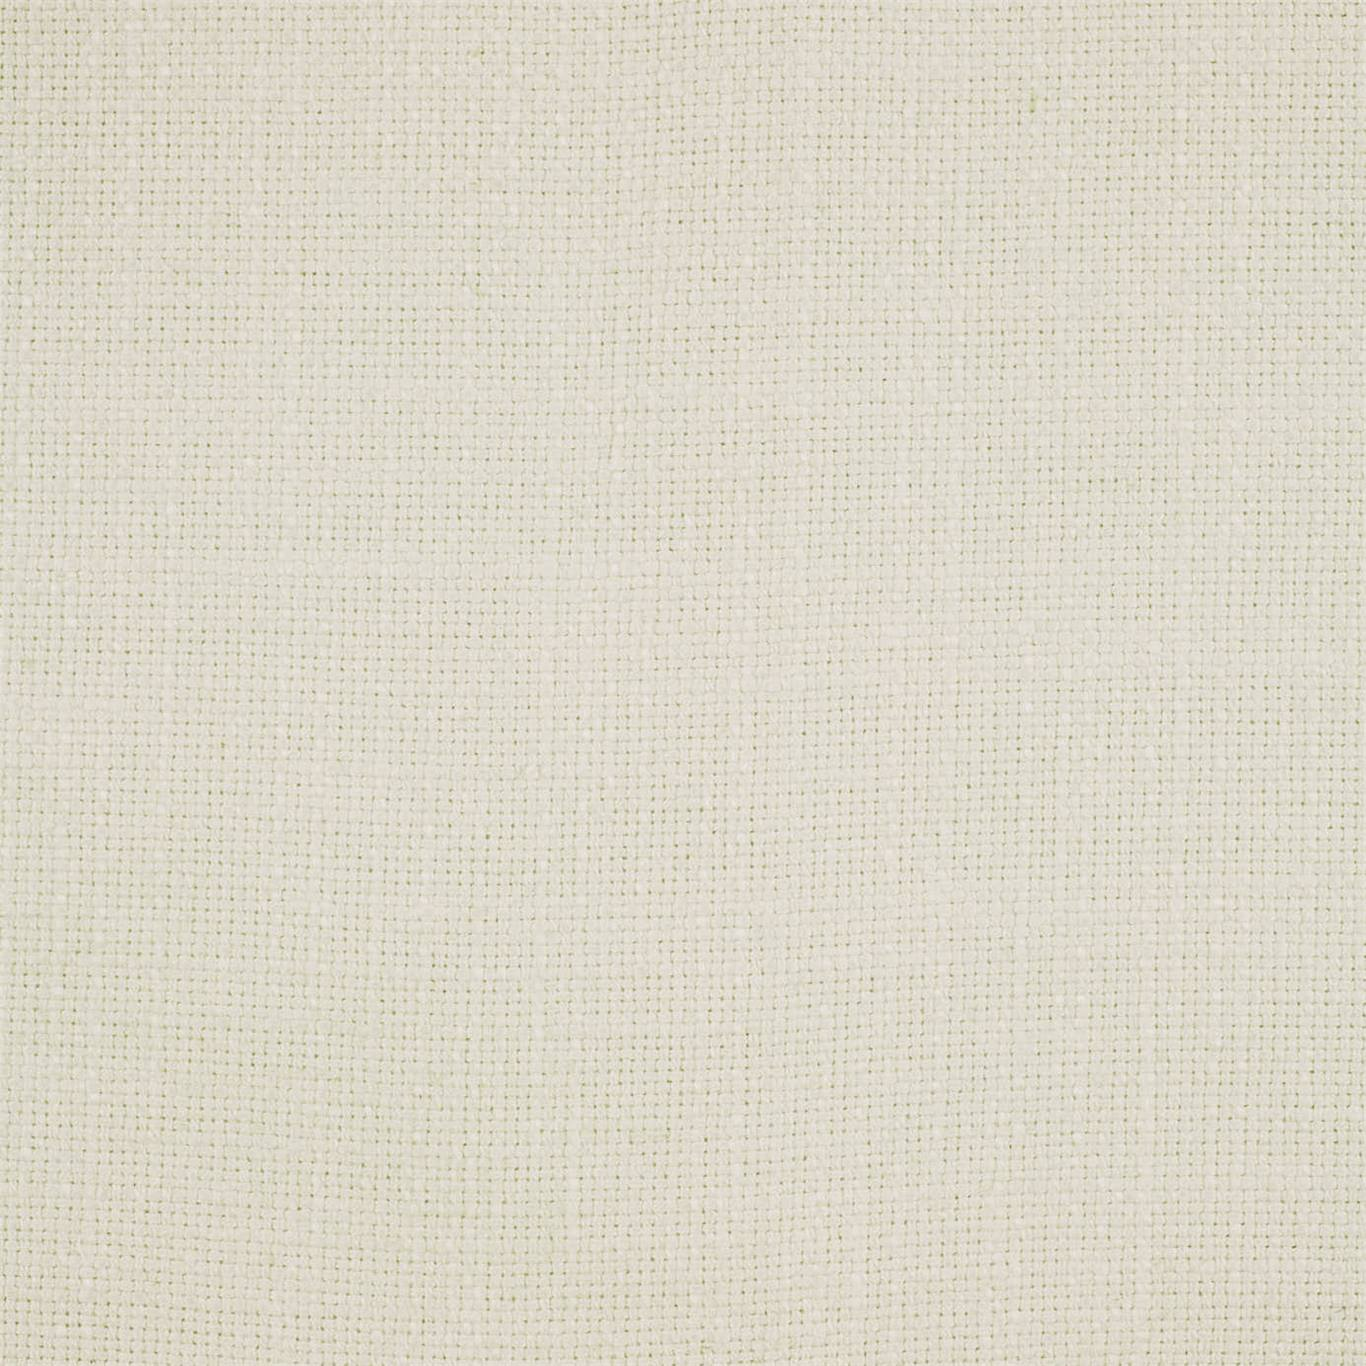 DTUC237120 Collection - Tuscany II Weaves Fabric